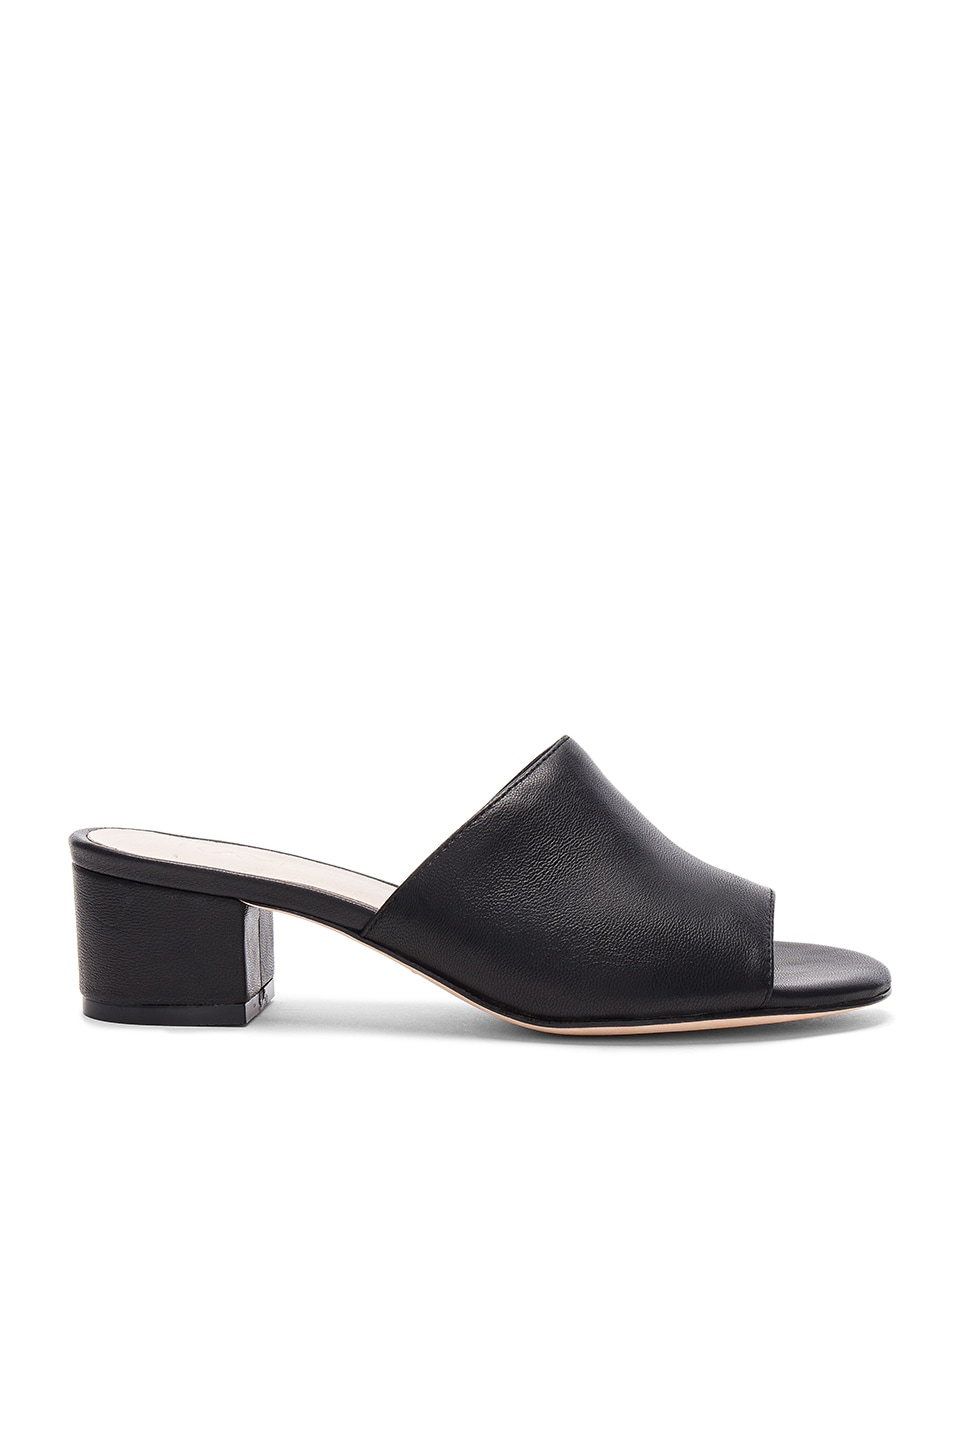 RAYE Cara Mule in Black